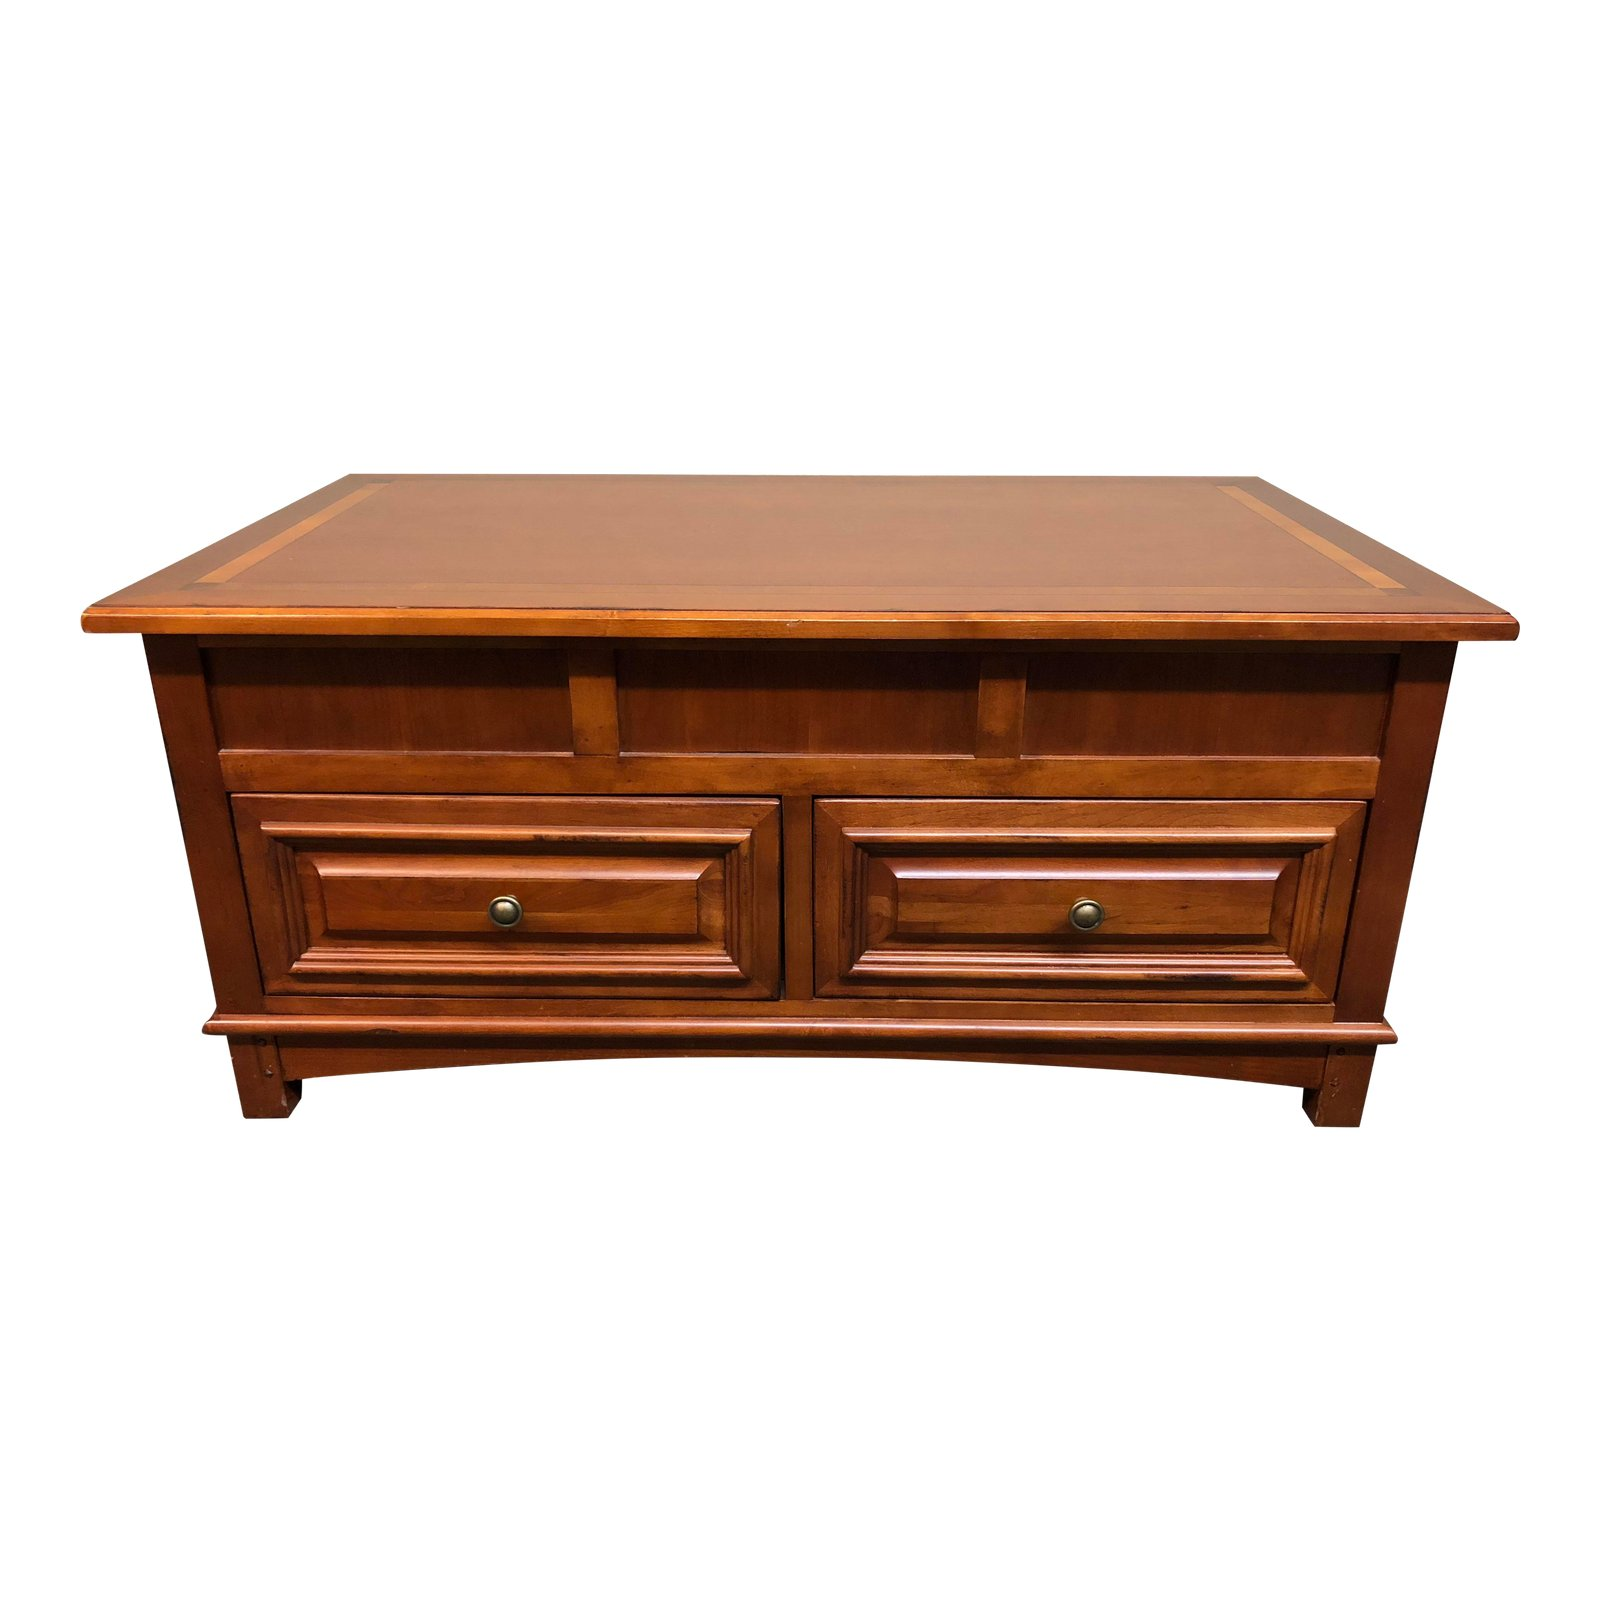 Drexel Heritage Bungalow Collection Coffee Table